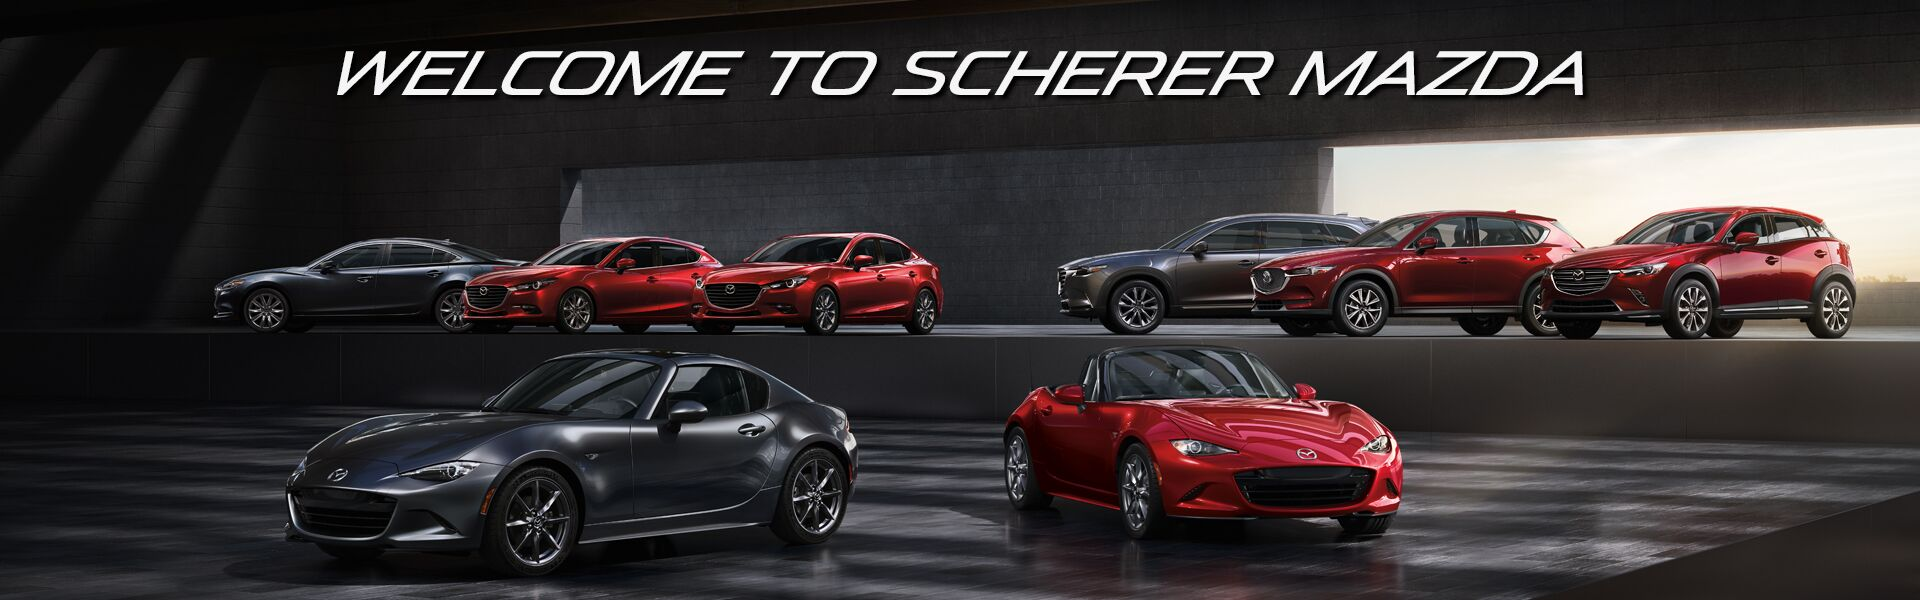 Welcome To Scherer Mazda